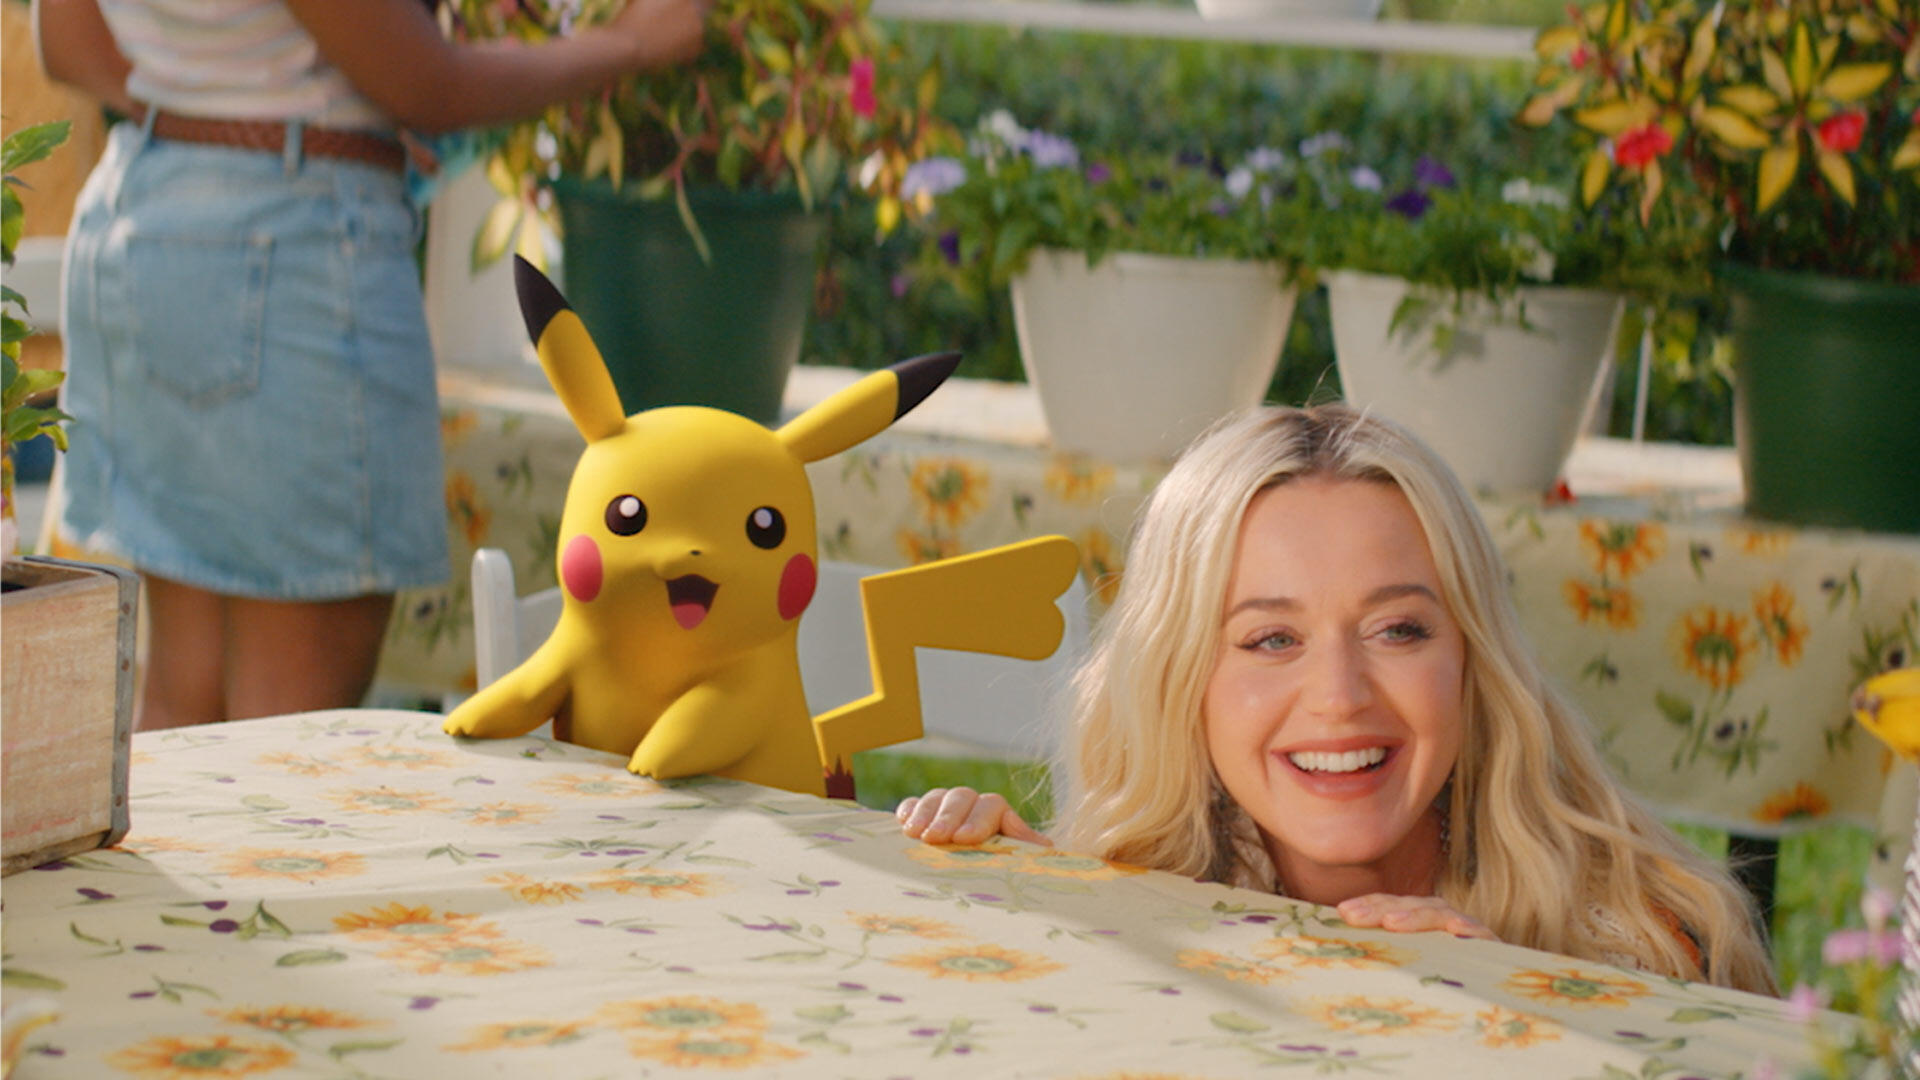 Katy Perry and Pikachu